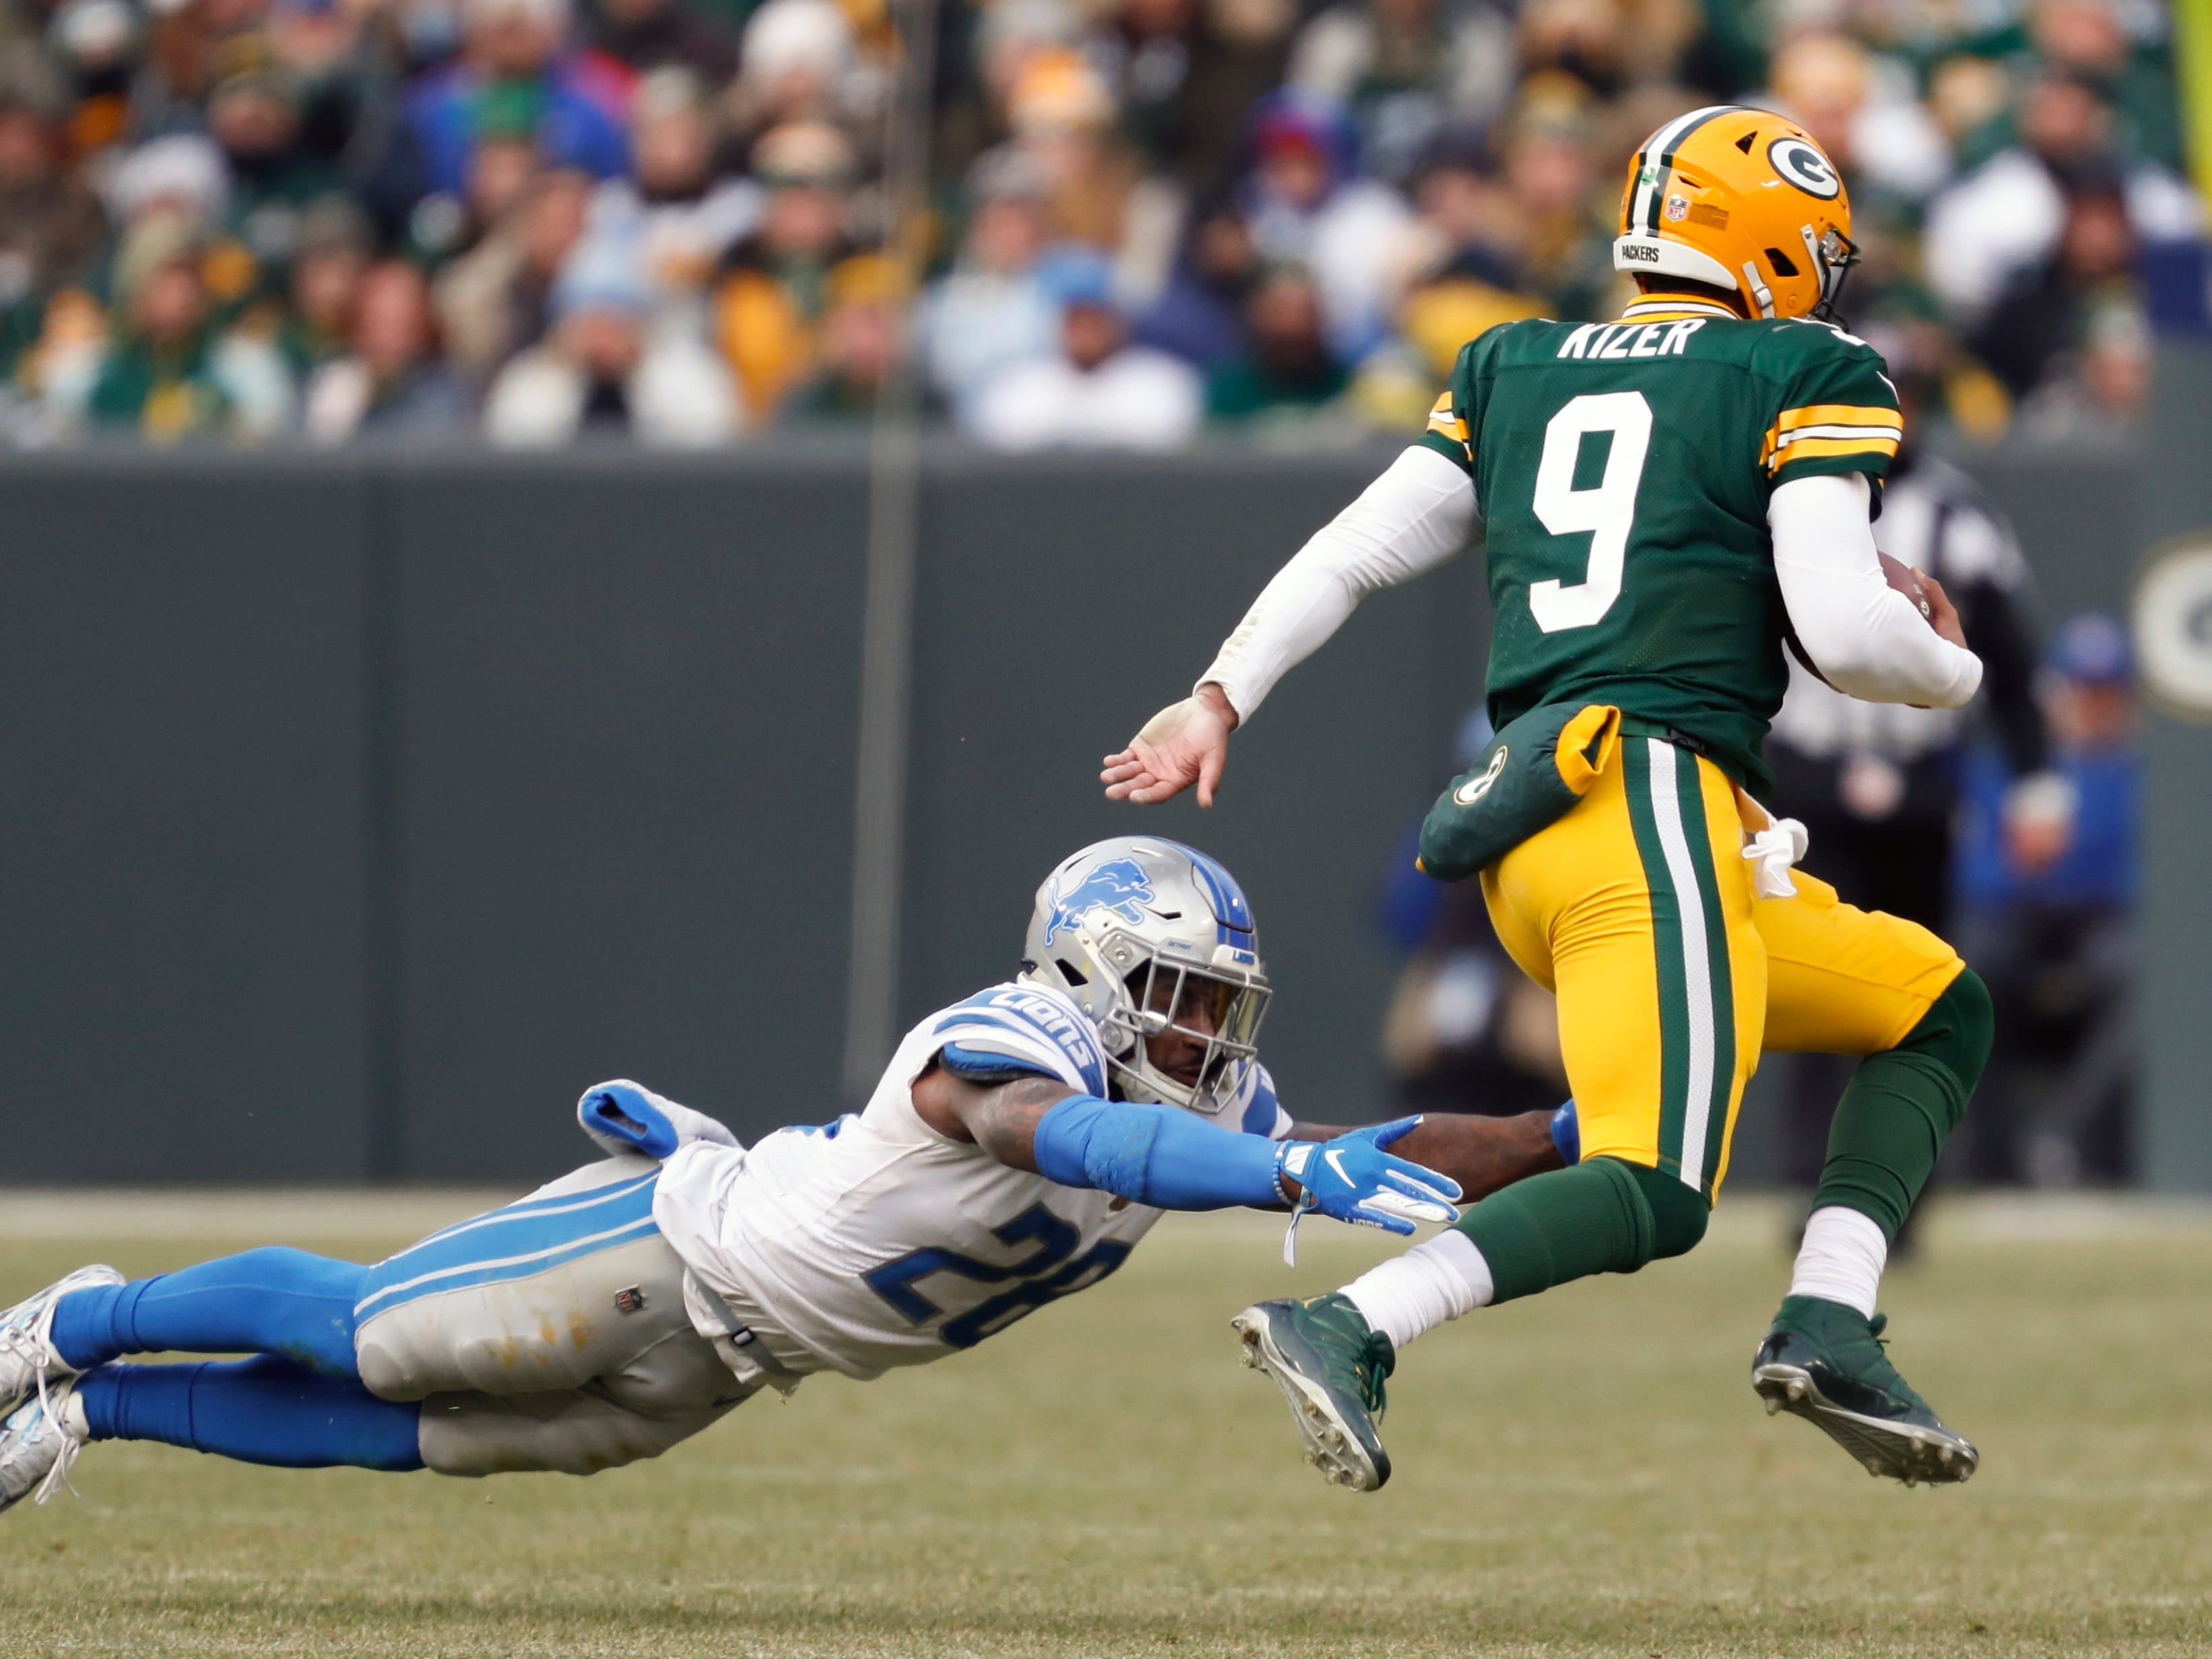 Green Bay's DeShone Kizer runs for a first down past Detroit's Quandre Diggs during the second half.